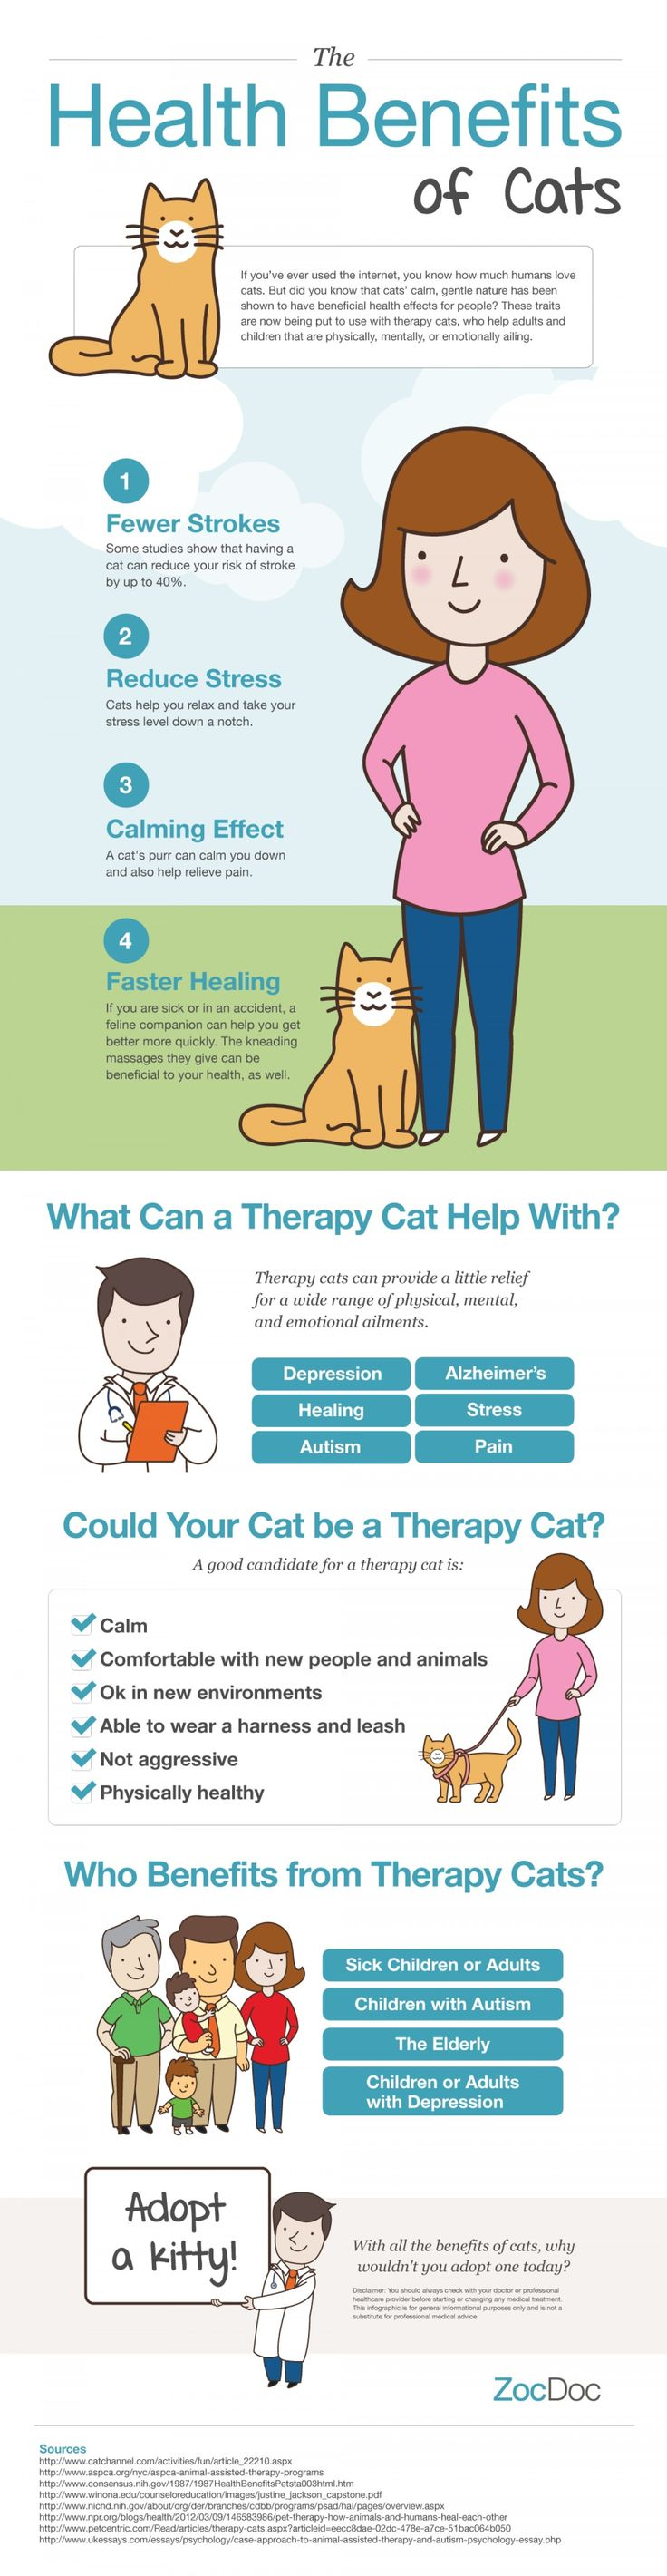 The Cats Effect On Human Health-  If you've ever used the internet, you know how much humans love cats. But did you know that cats' calm, gentle nature has been shown to have beneficial health effects for people?